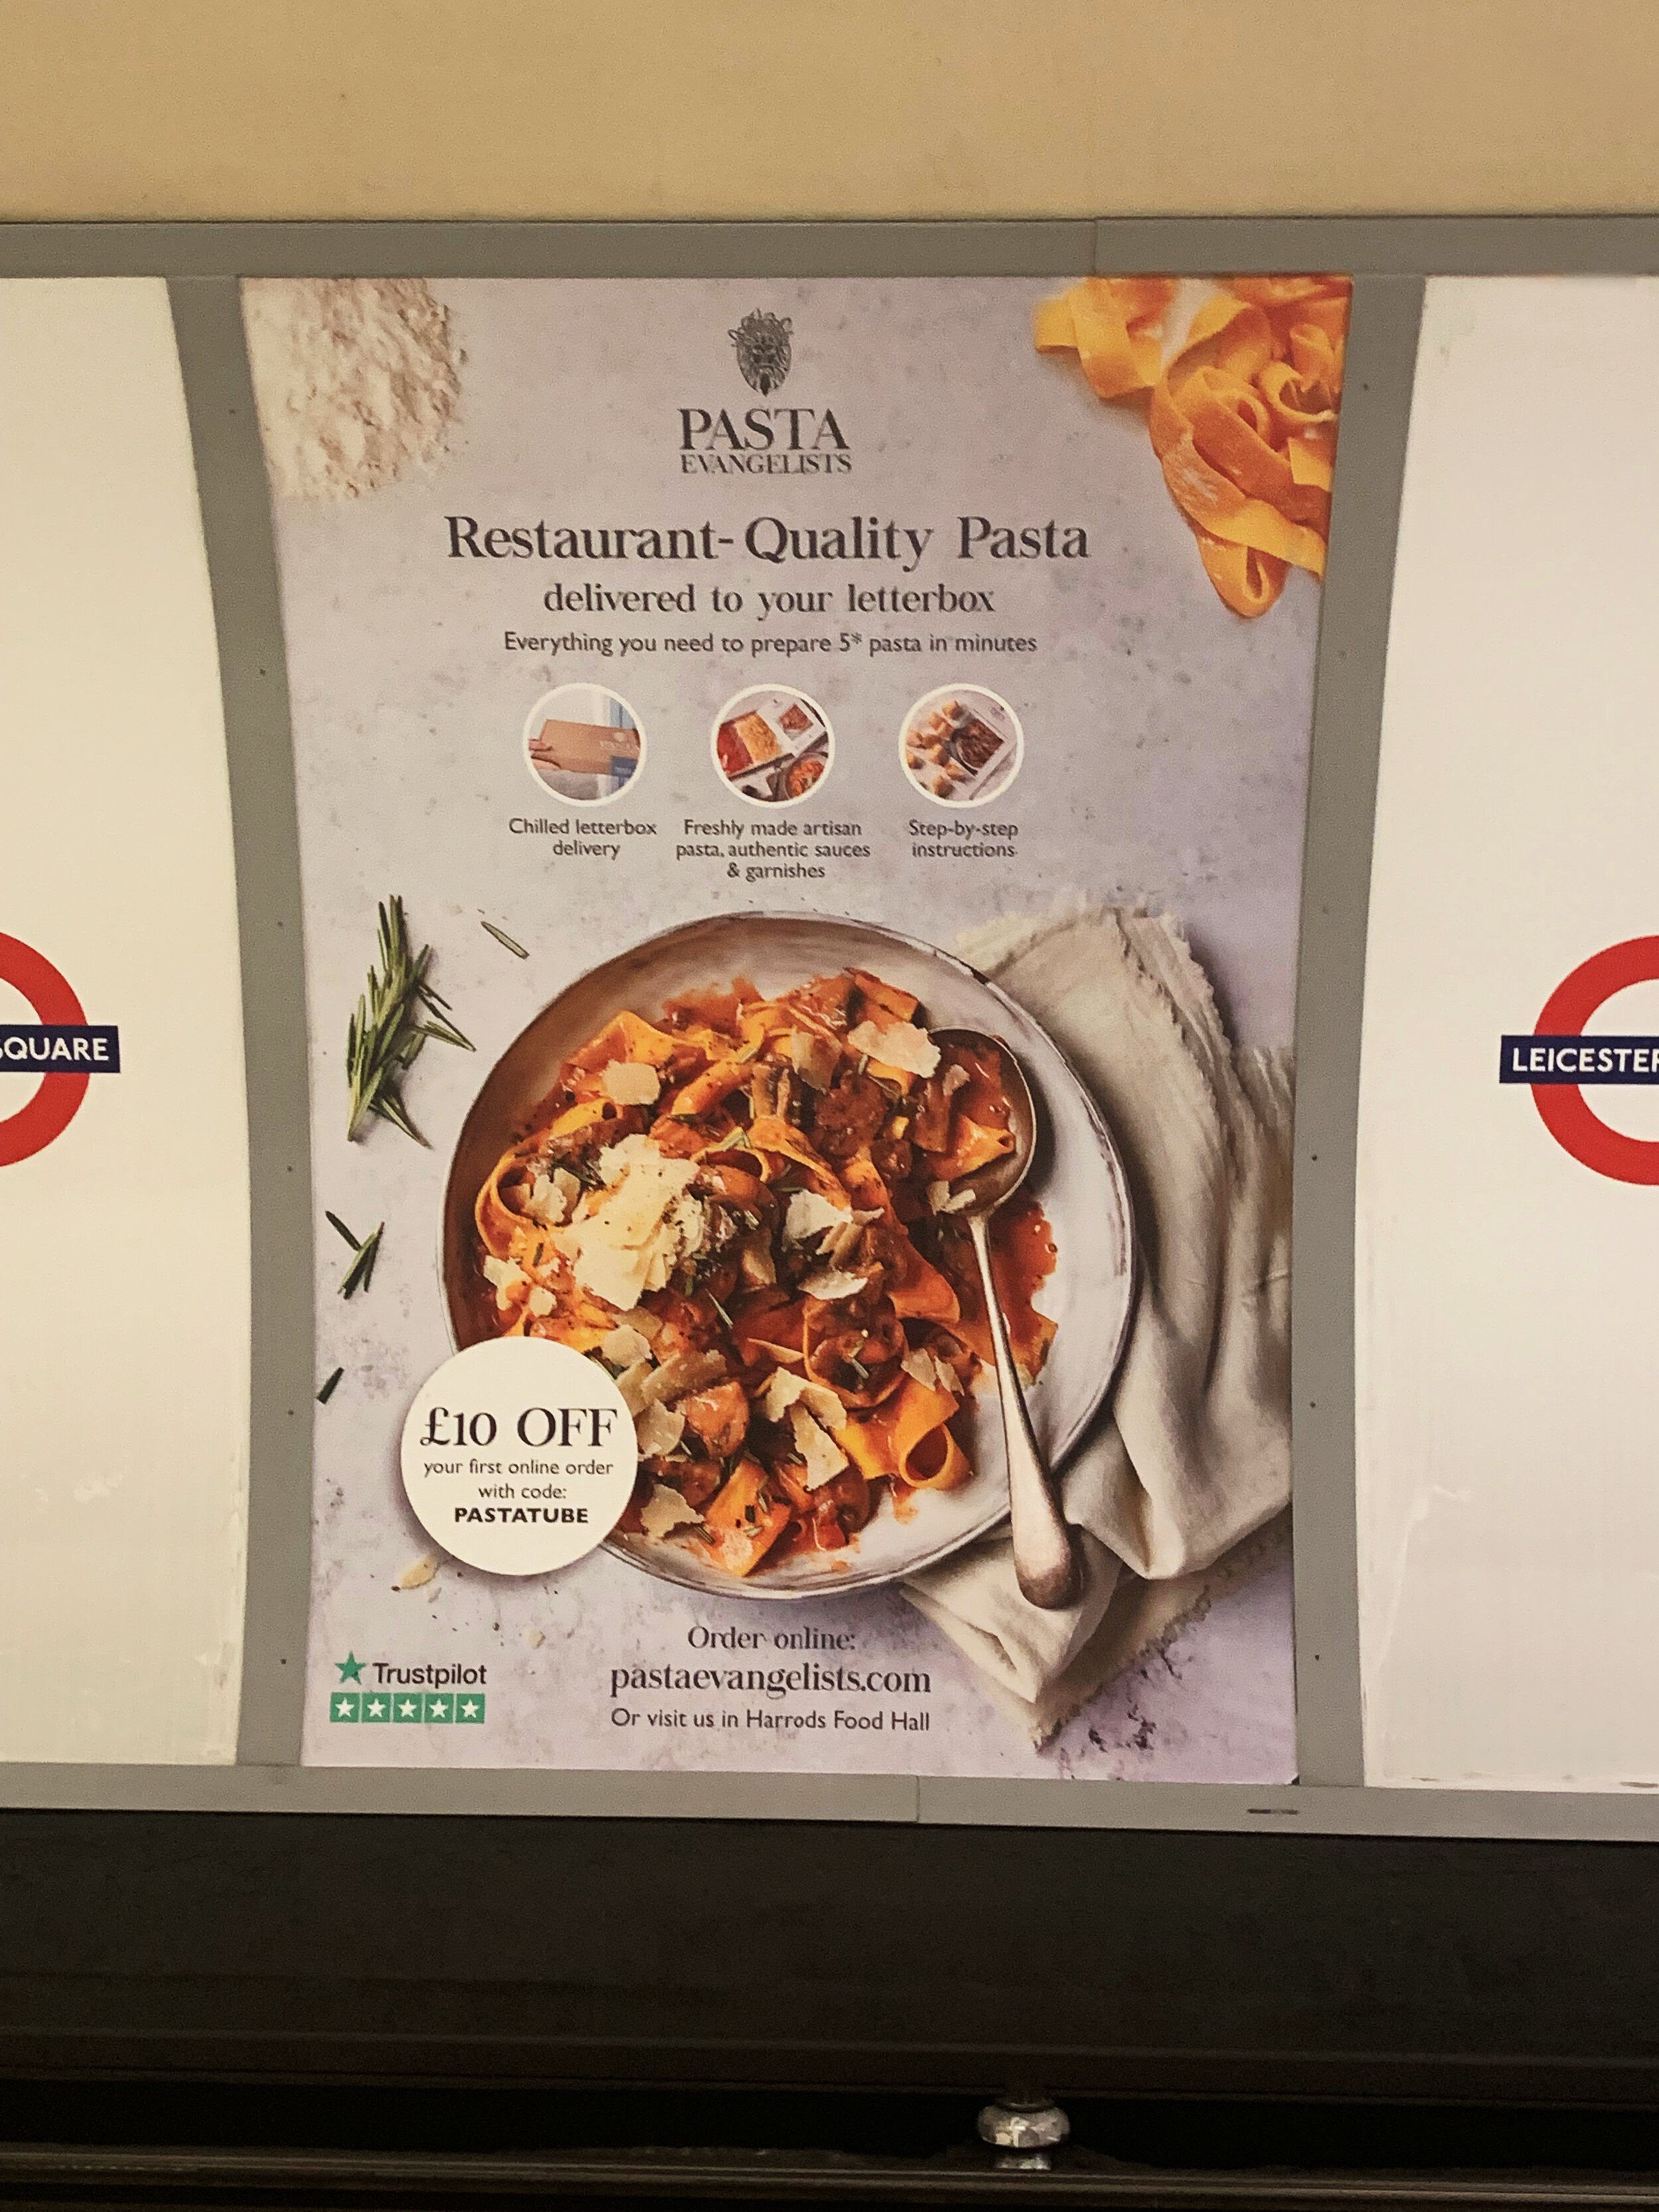 Tim's image on the at Leicester Square underground station!